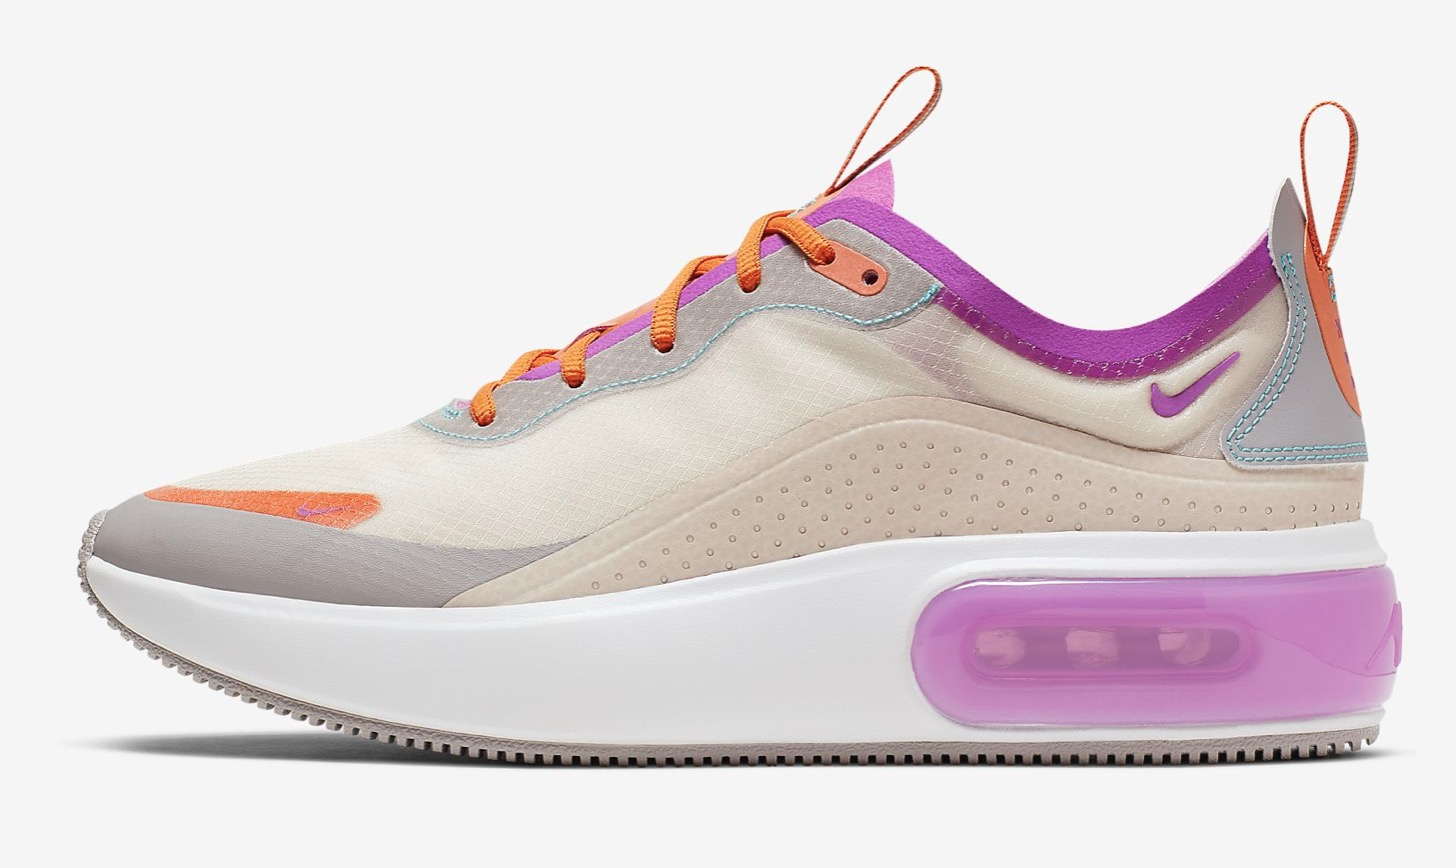 Nike Air Max DiaLight Orewood Brown/Starfish/Atmosphere Grey/Hyper Violet outer wall